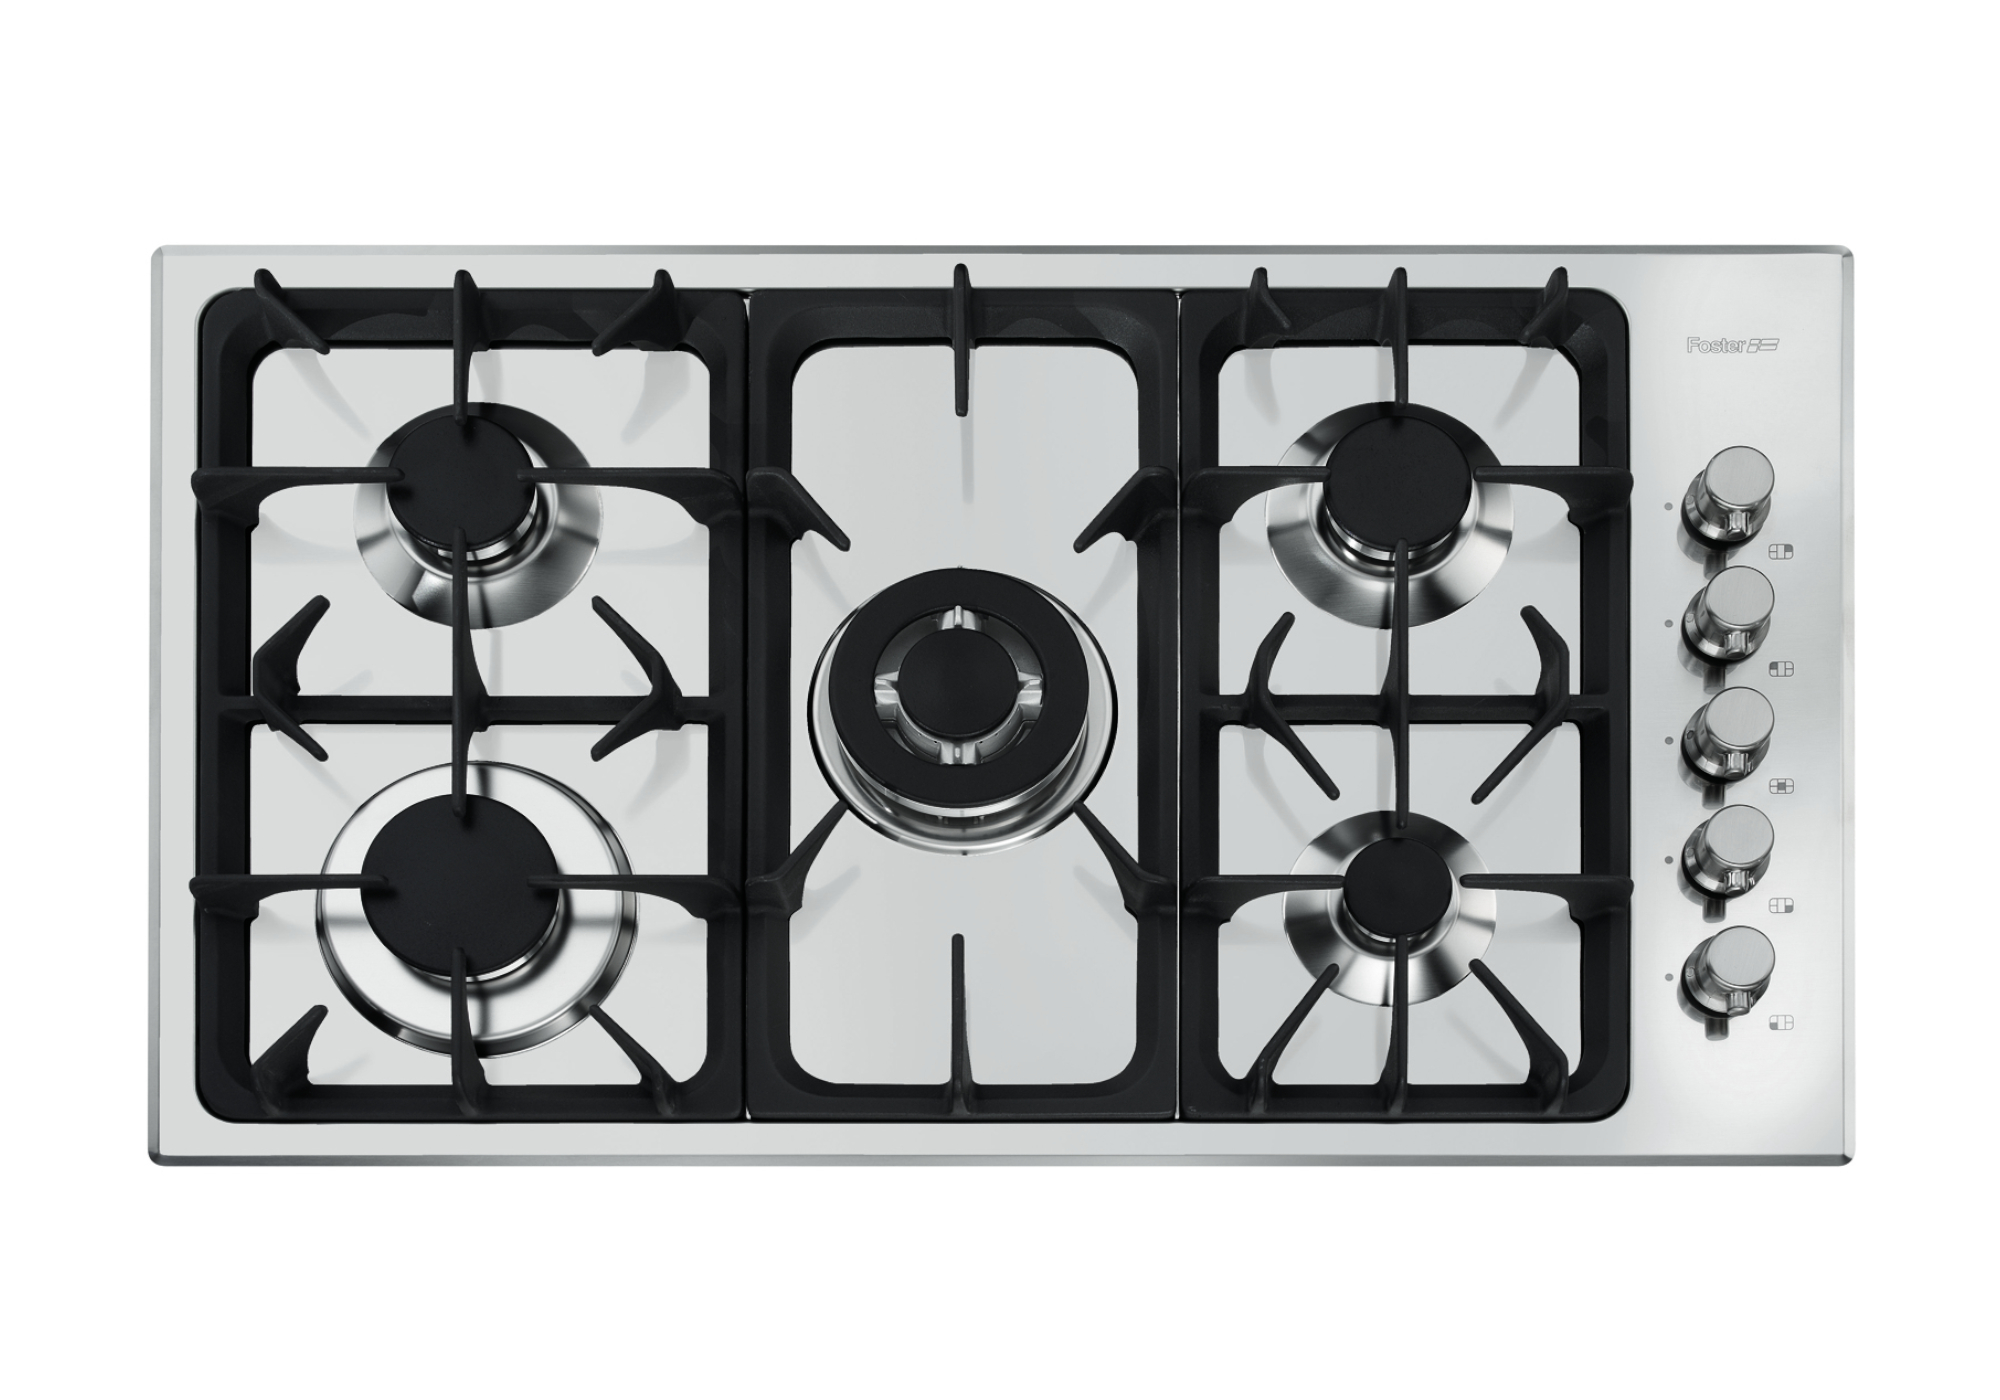 Professional series cooktop – 33″ x 19″ – STD - 7055 962